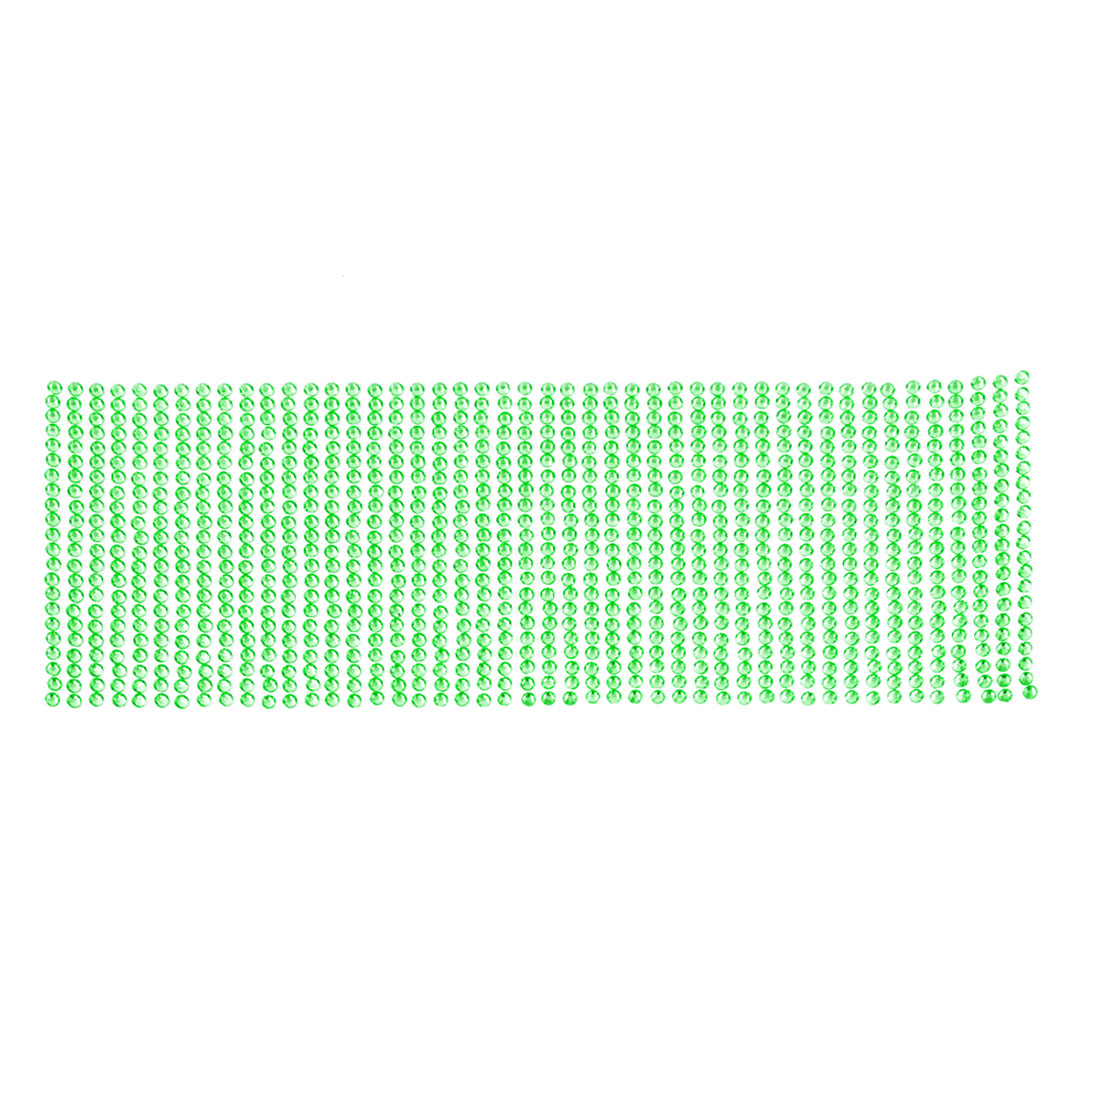 25.5cm x 9cm Green Glittery Crystals Connected Sticker Sheet for Vehicle Car